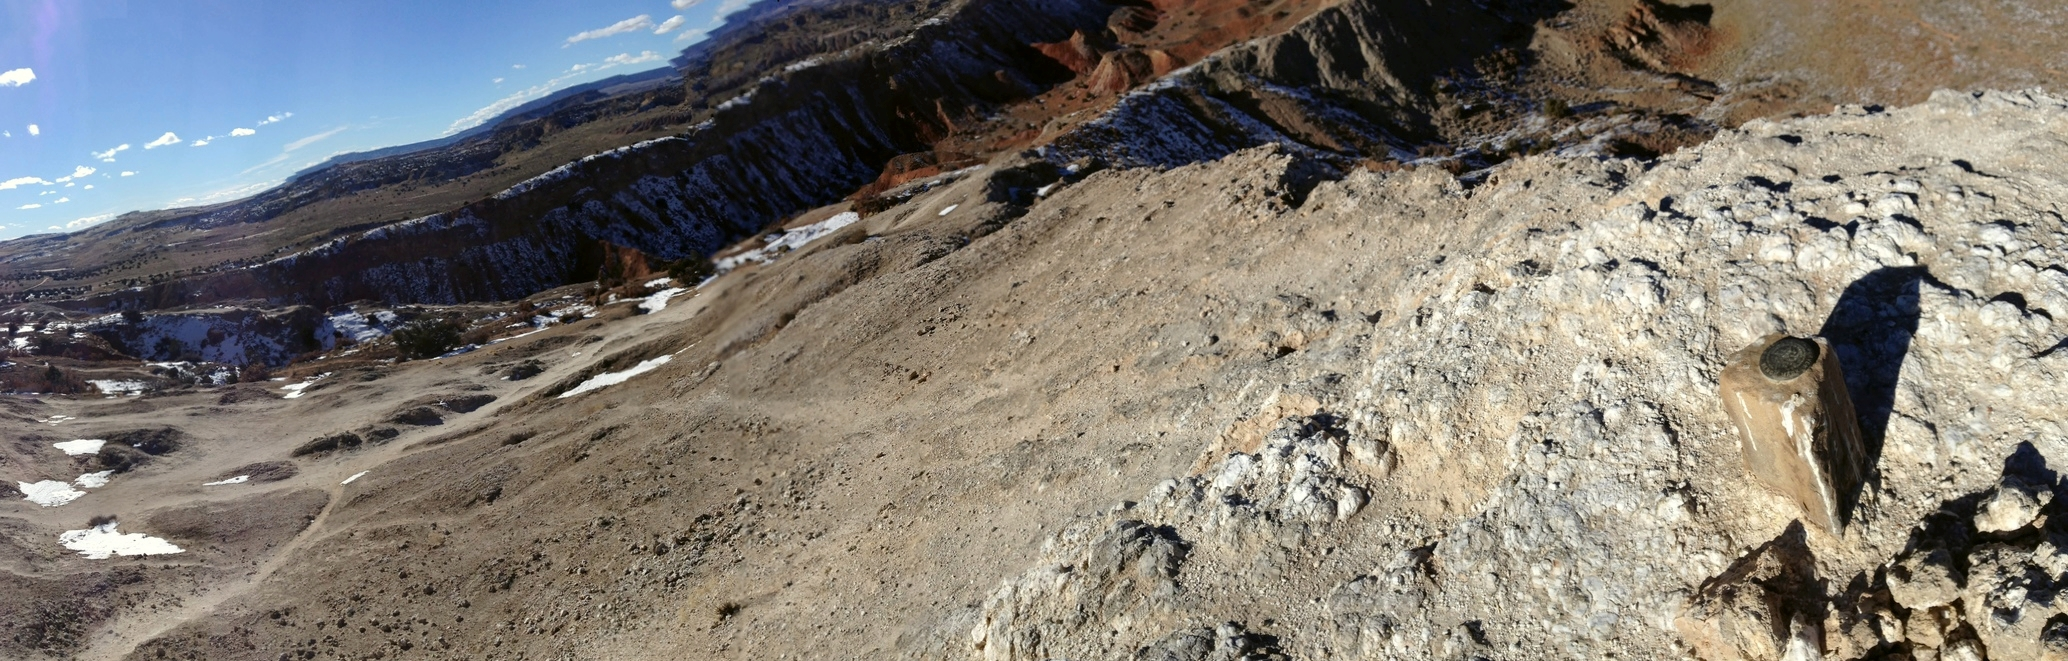 My view of crusty soil atop white gypsum rock on a recent hike of White Ridge in northwest New Mexico